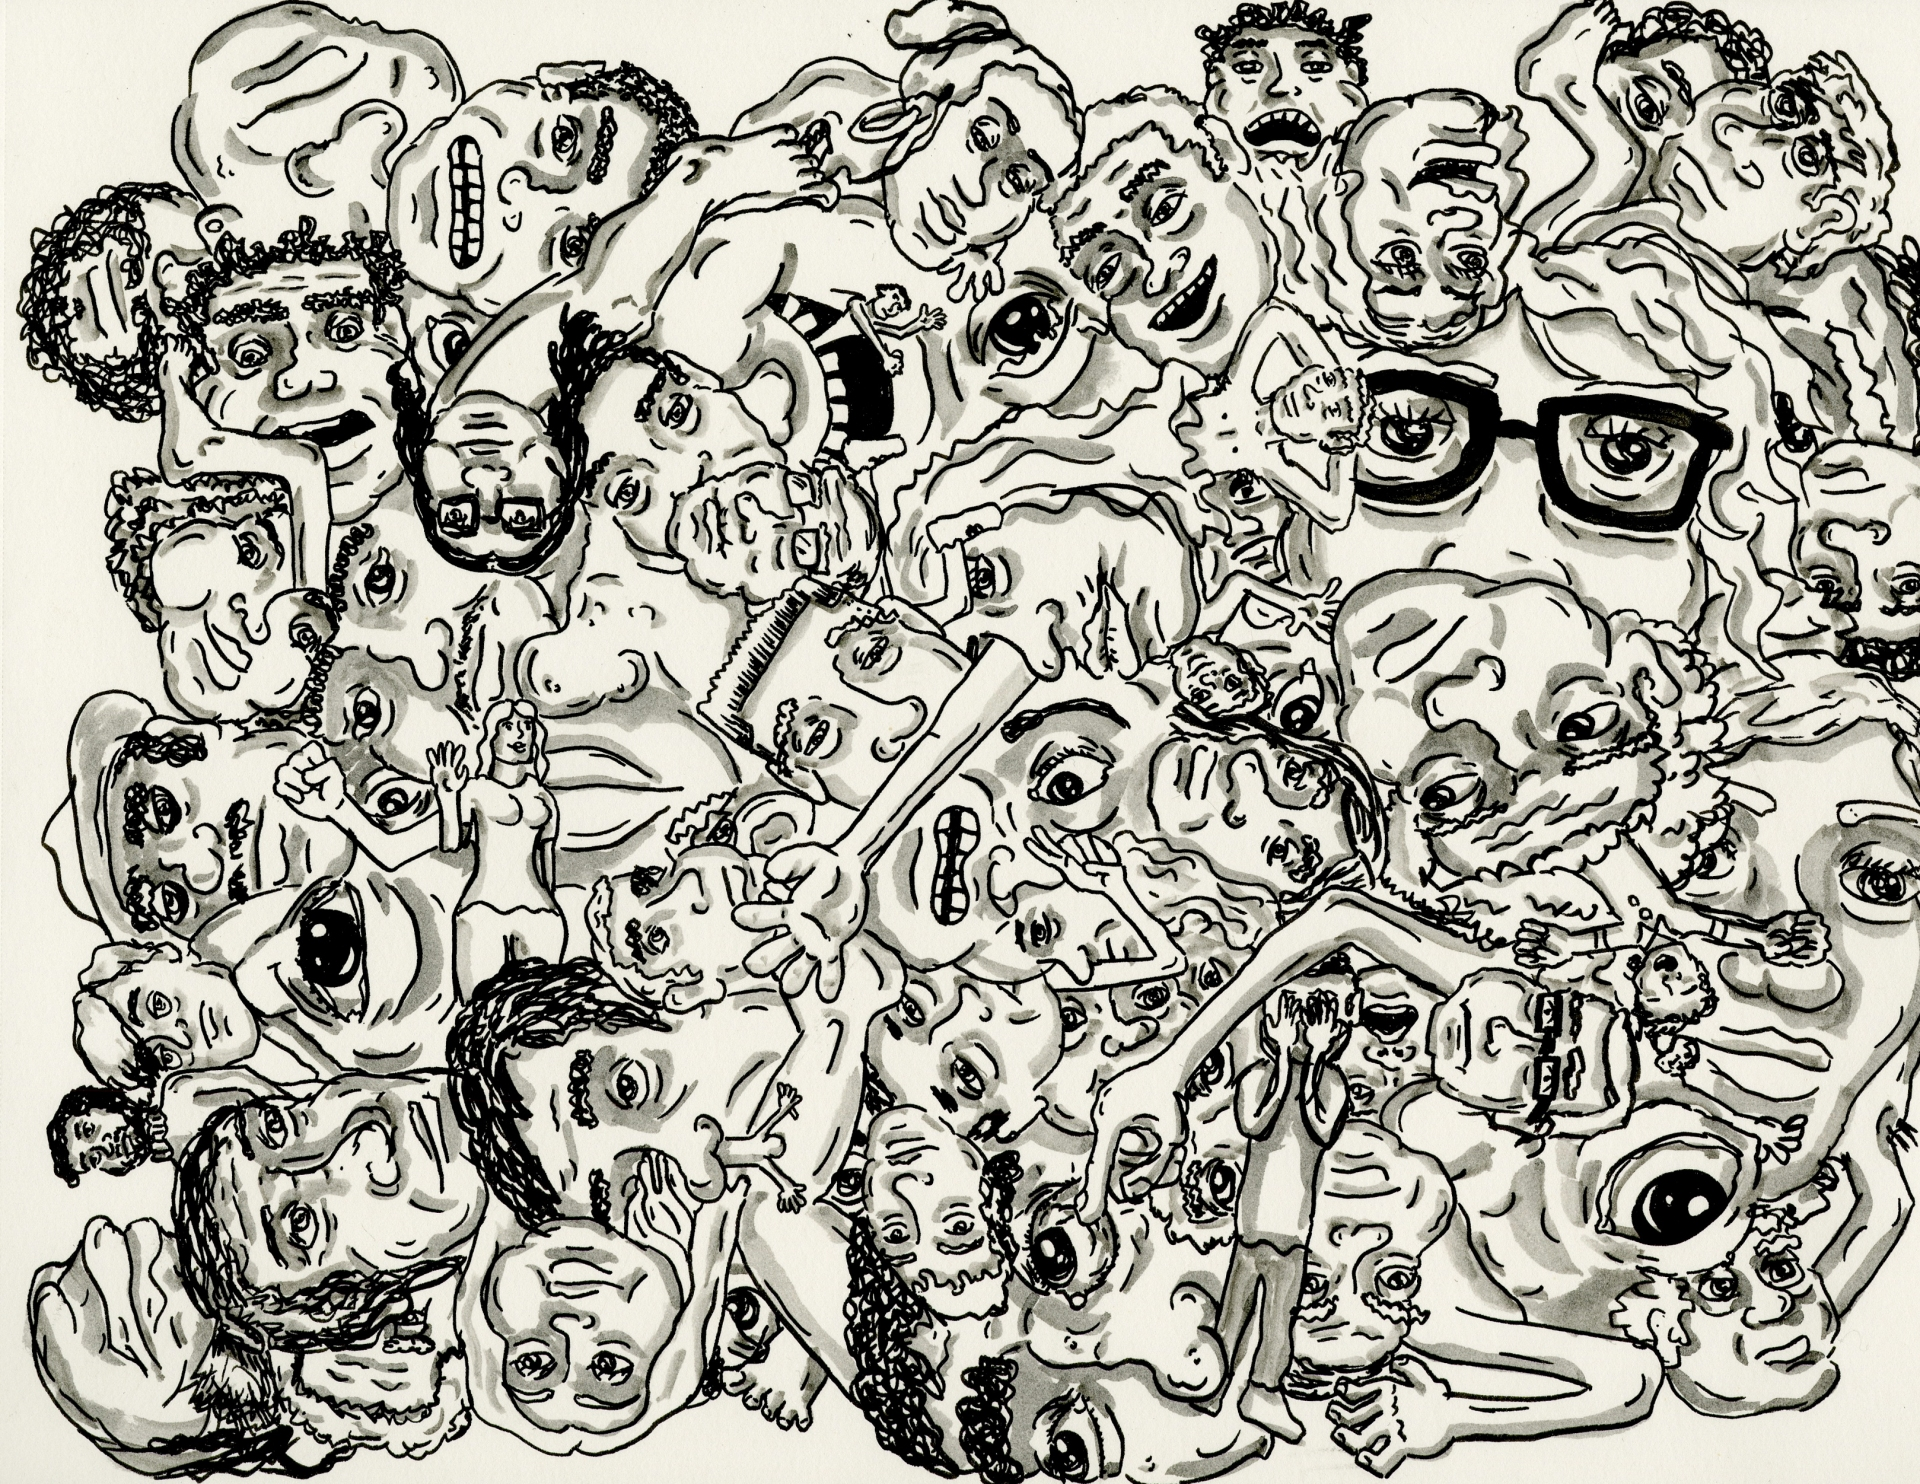 chaotic crowds